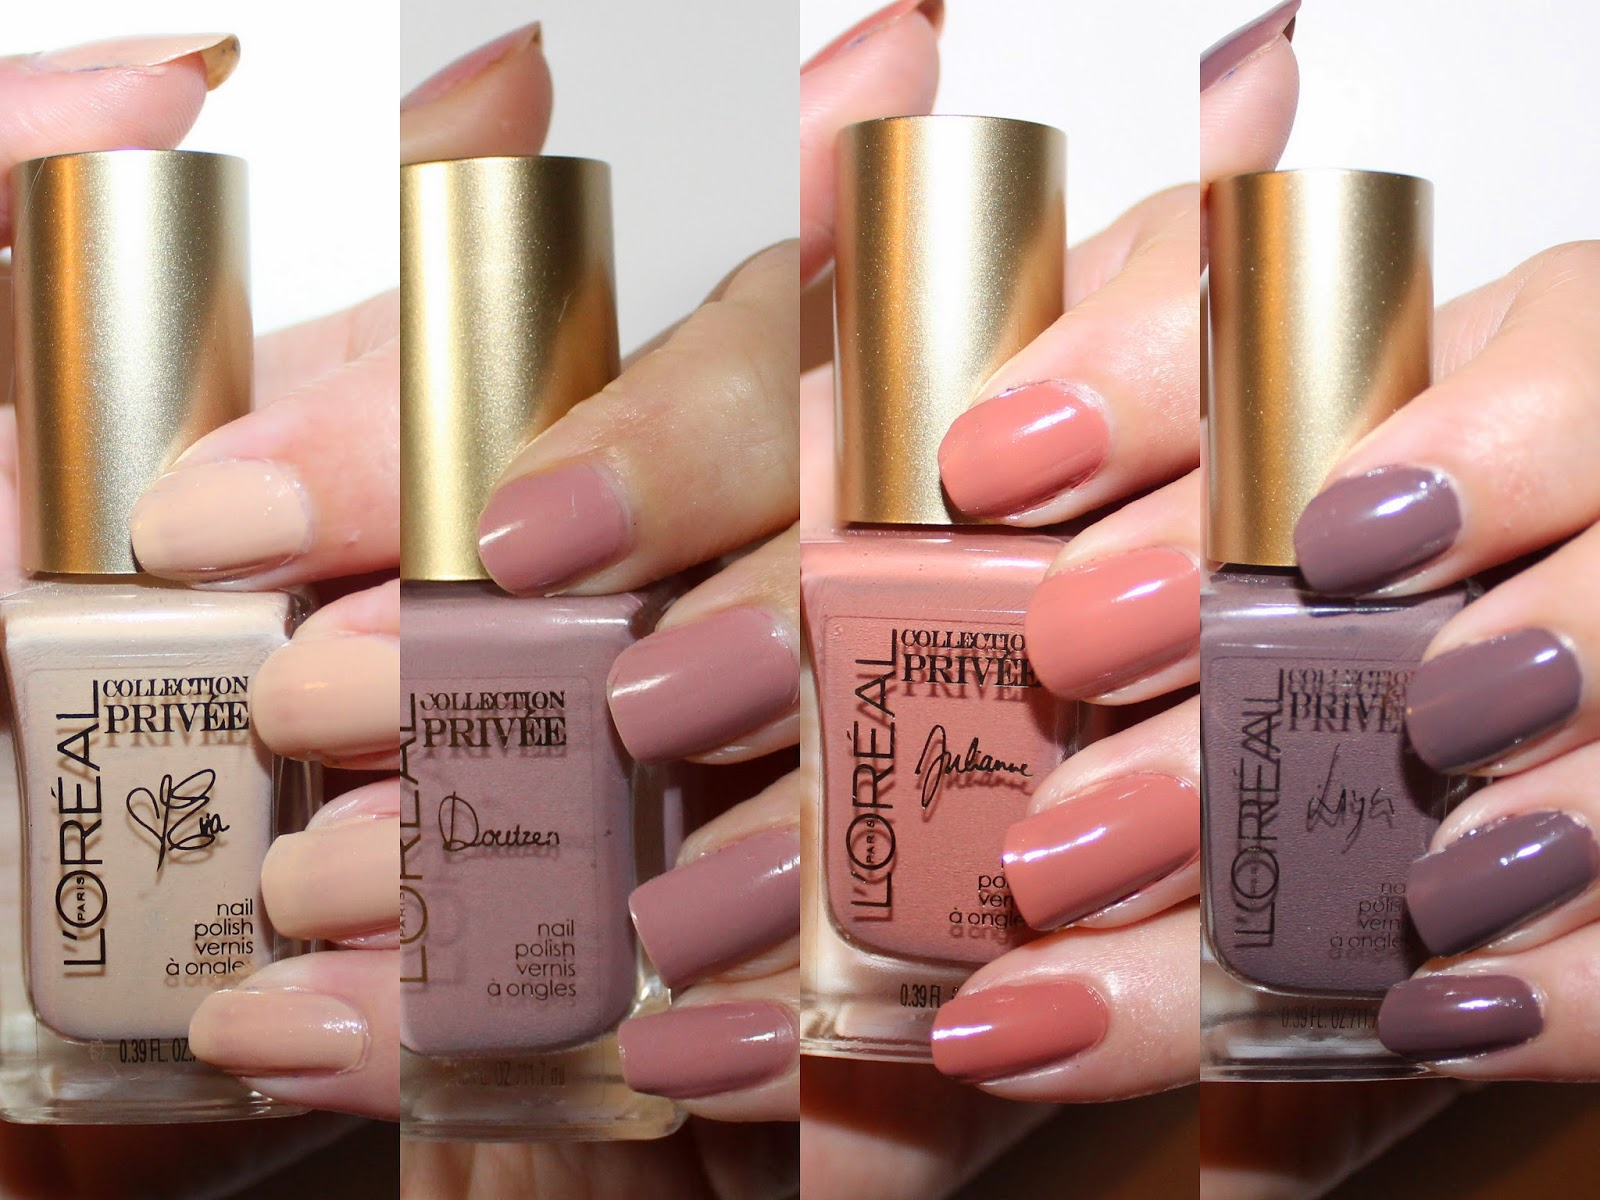 L'Oréal Collection Privée Exclusive Nudes Nail Polishes Swatches